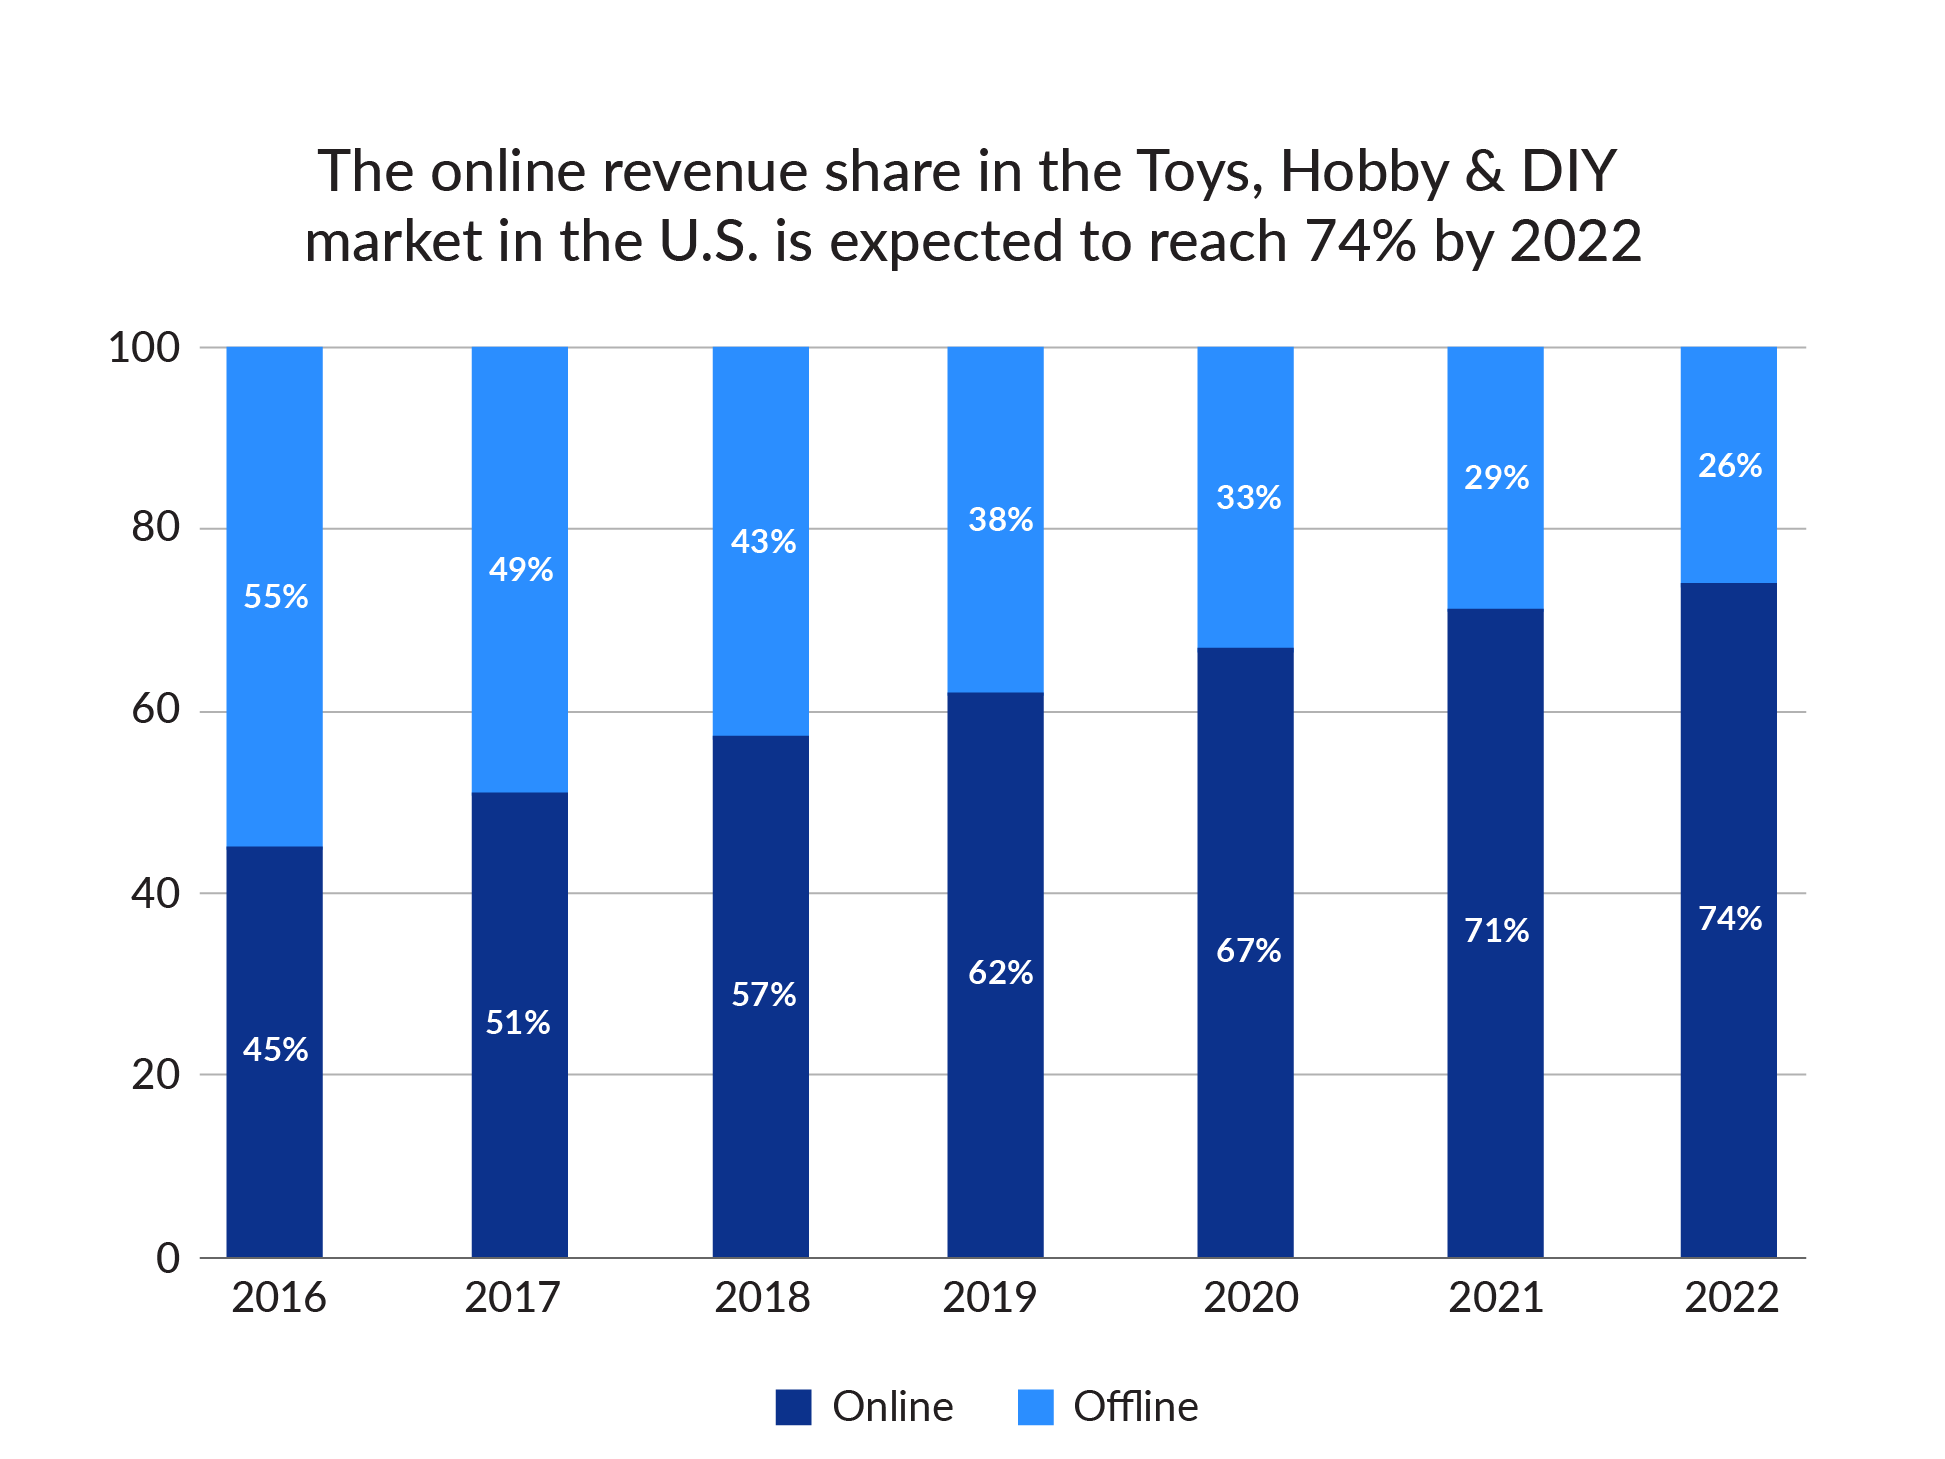 projected revenue share in Toys, Hobby & DIY market in US by 2022